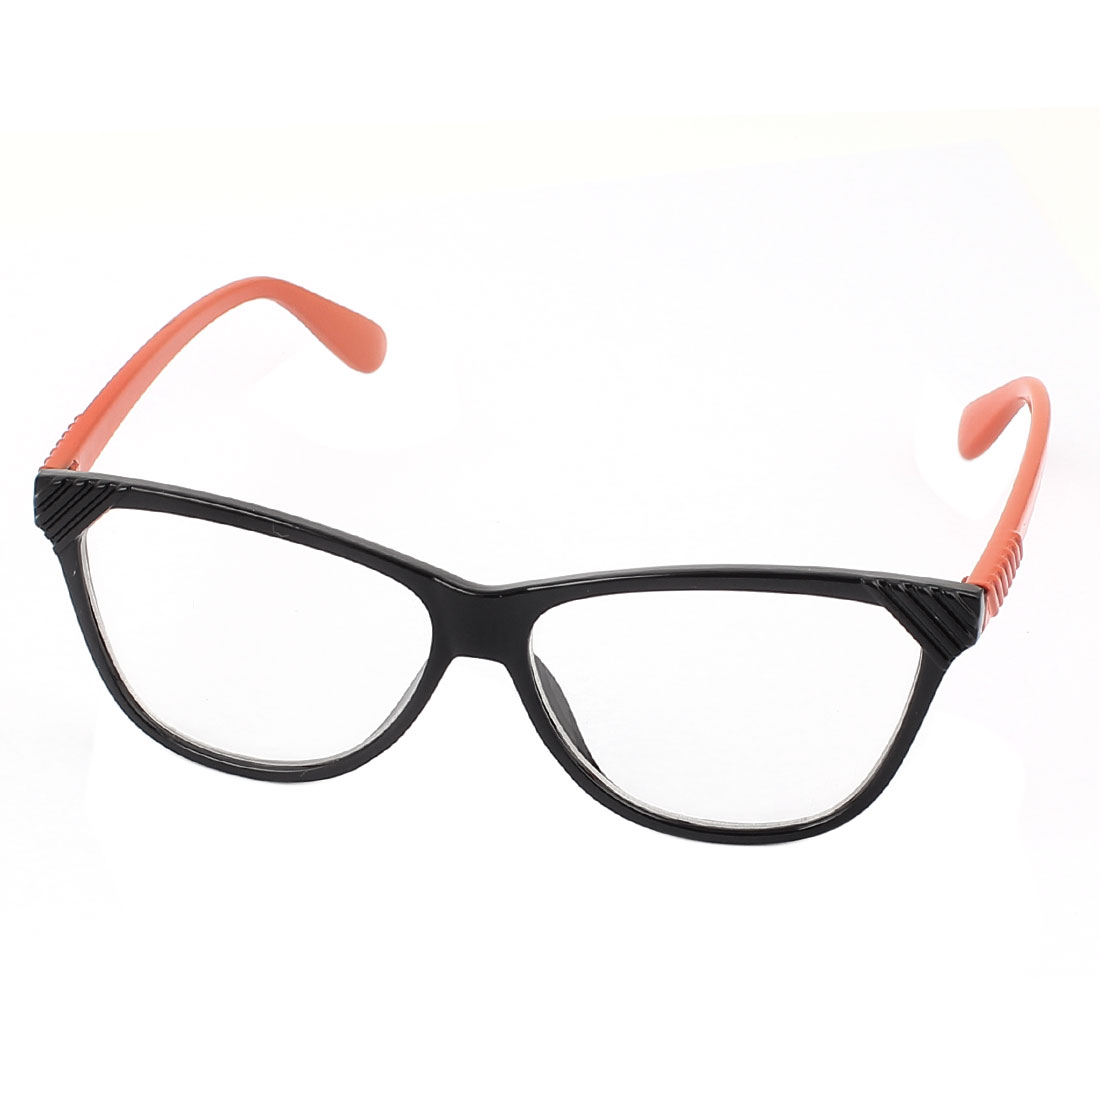 Plastic Arm Single Bridge Clear Lens Plain Glasses Eyeglasses Plano Spectacles Orange